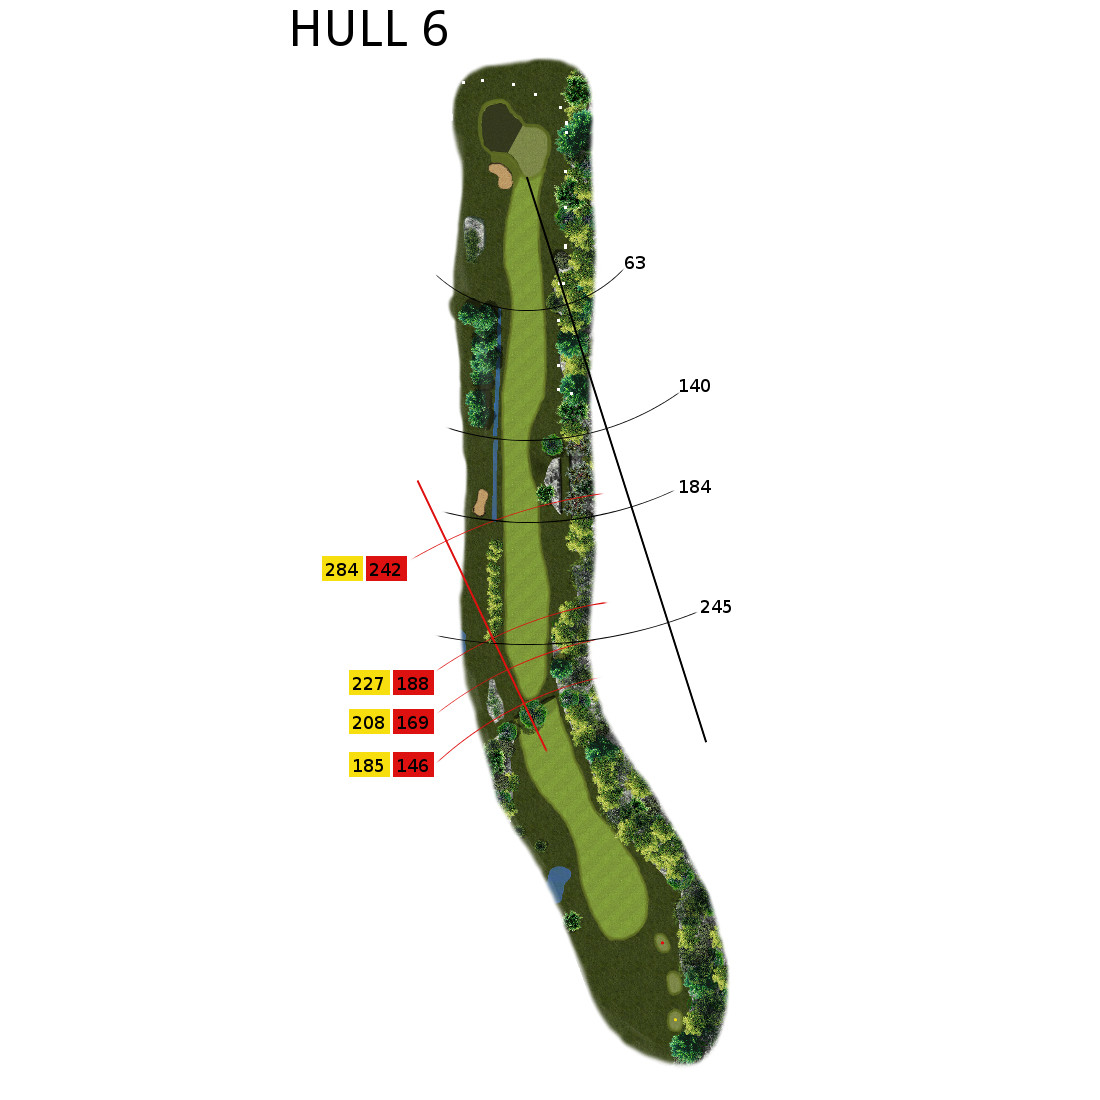 Hull 6 (Par 3, Indeks 15)